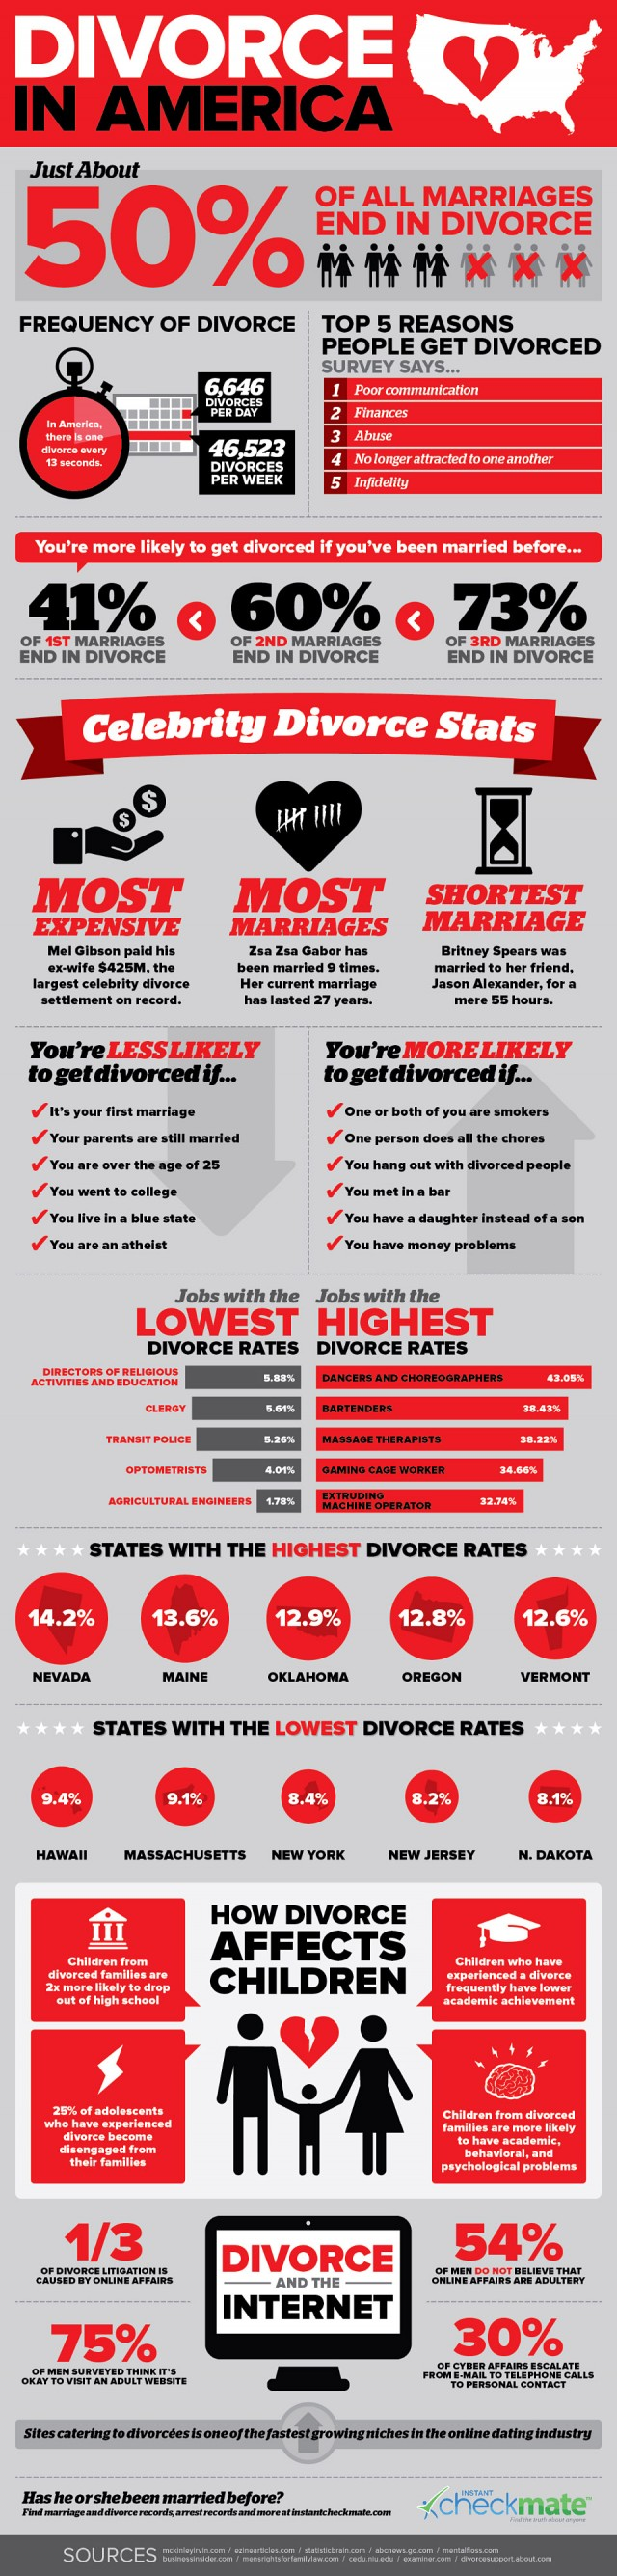 2nd marriage divorce statistics